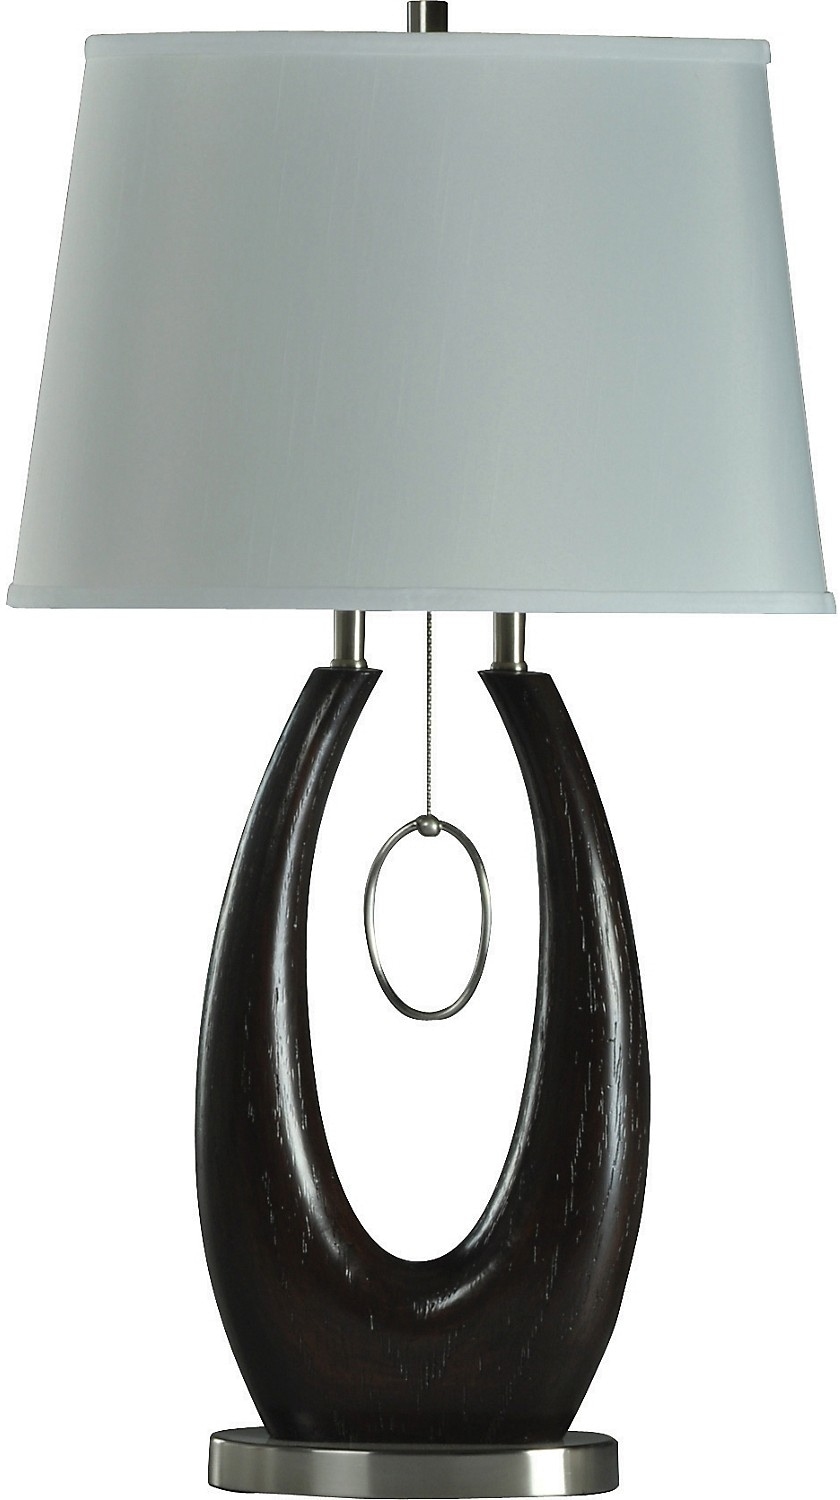 Home Accessories - Oval Wood Table Lamp